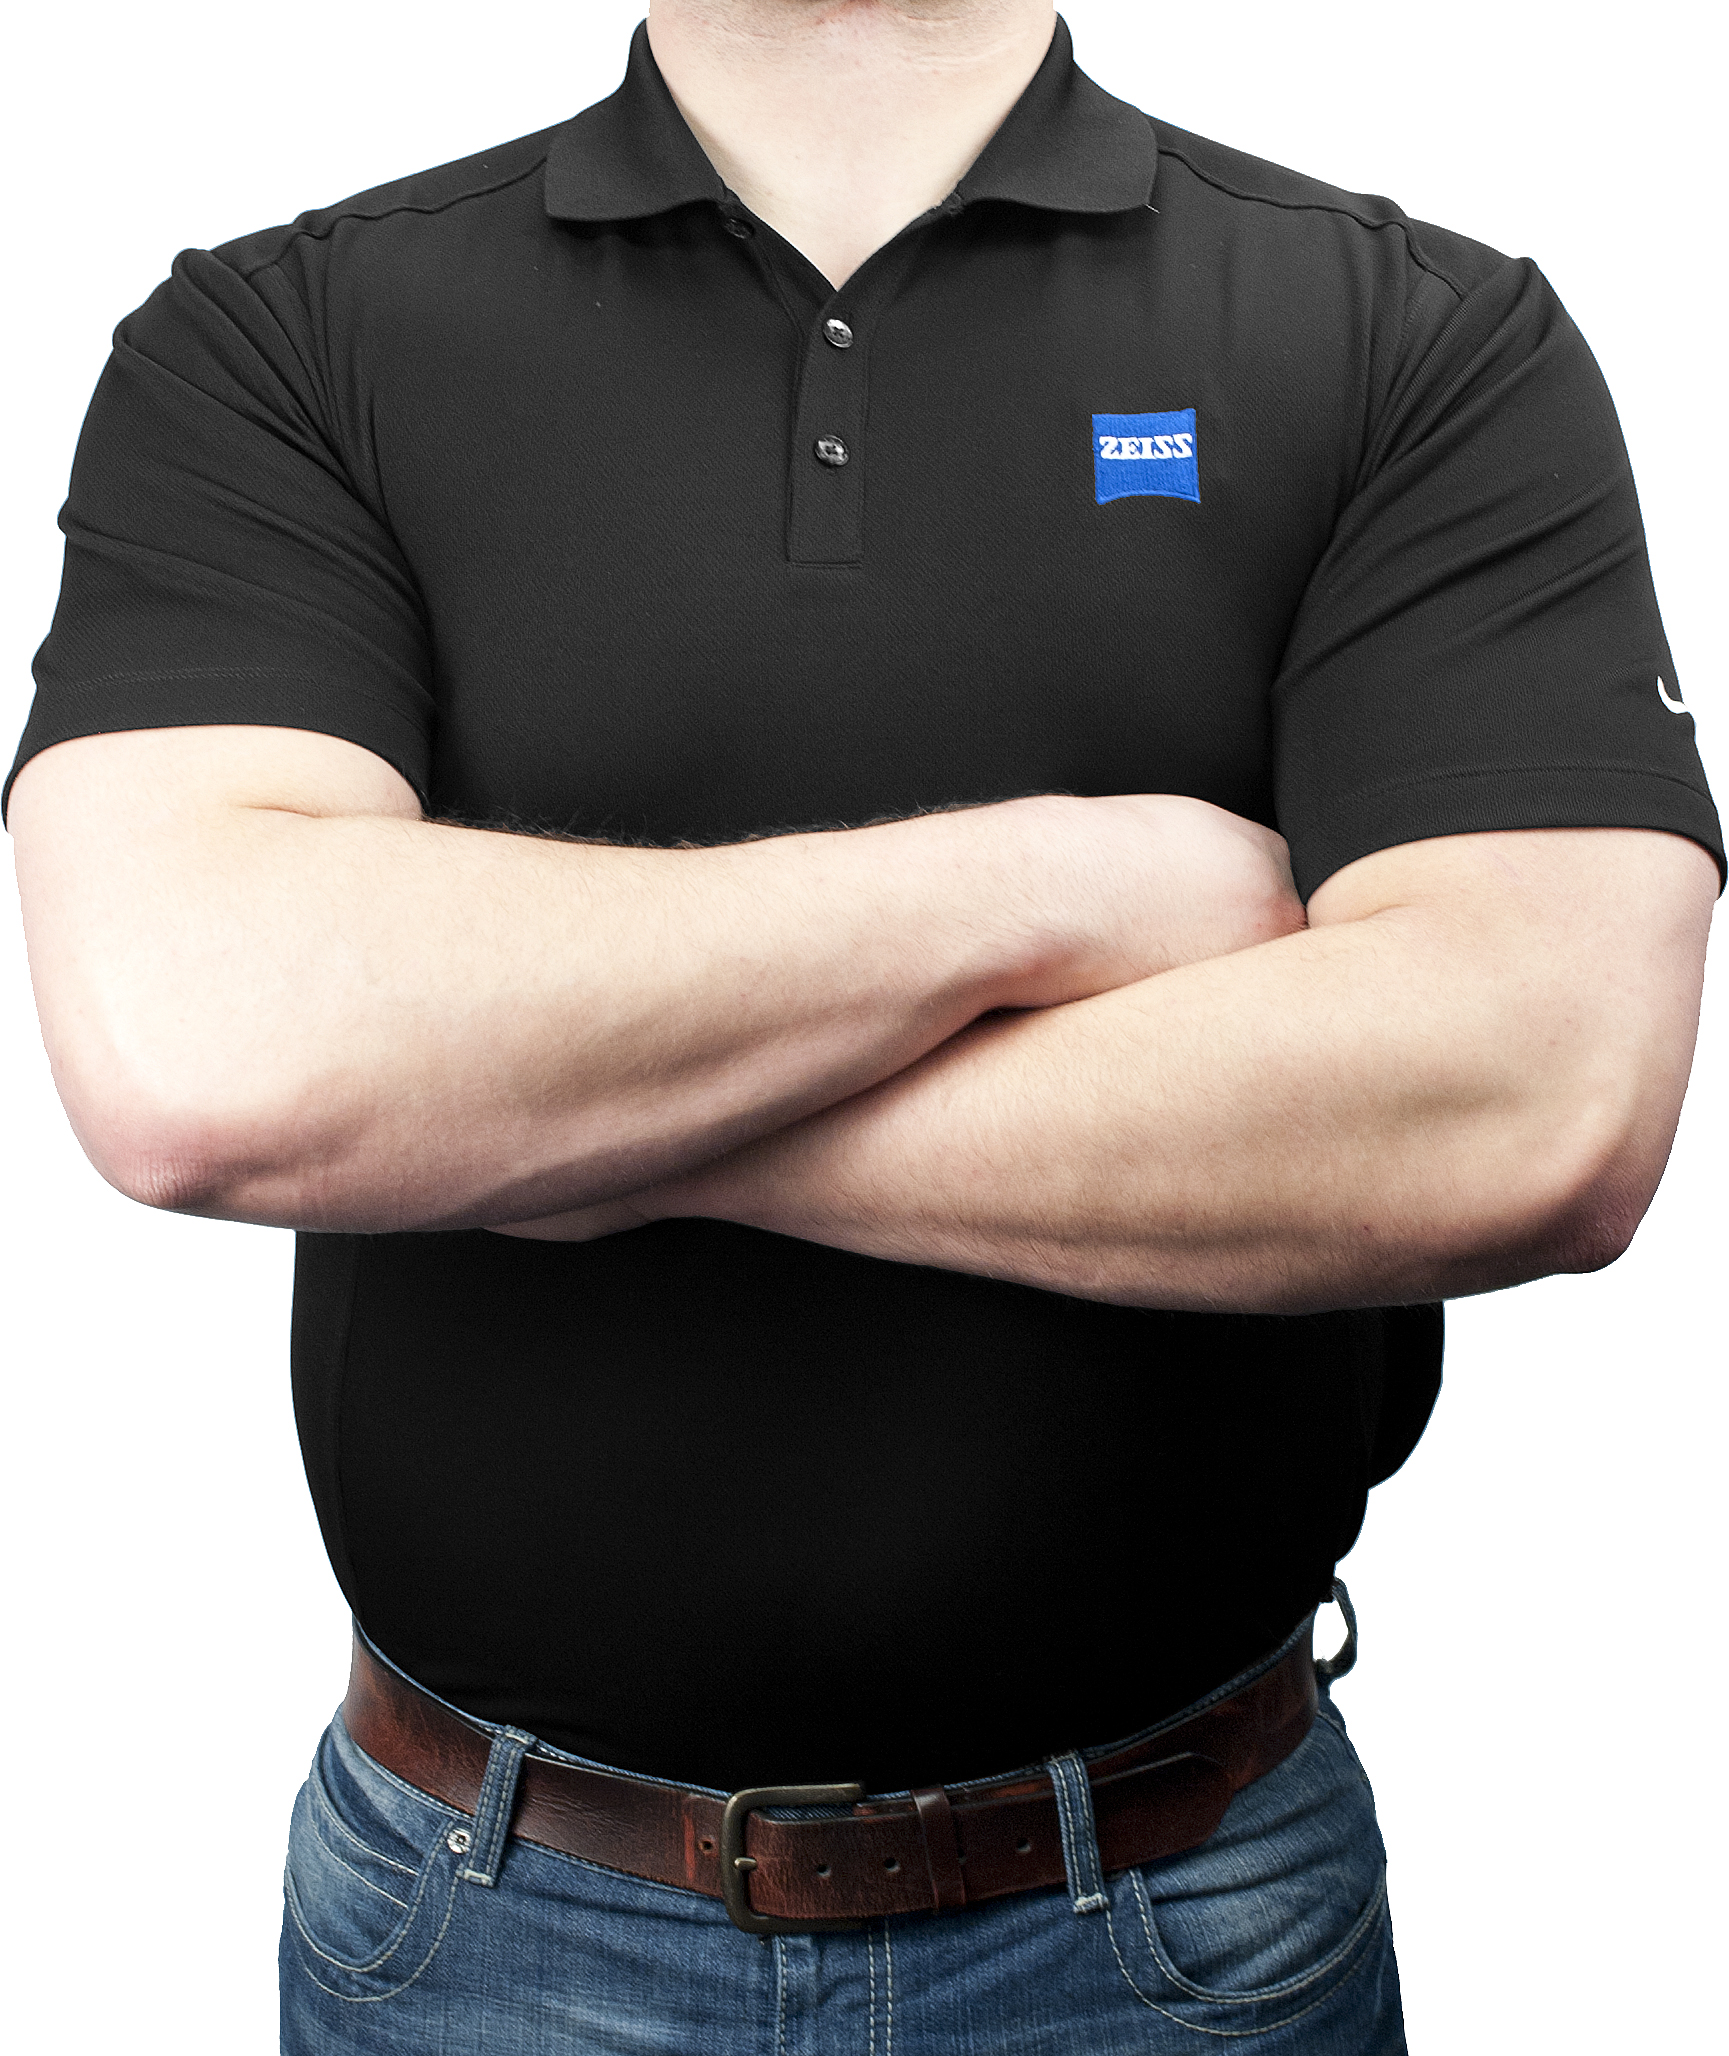 Zeiss Gear Golf Polo Shirt Free Shipping Over 49